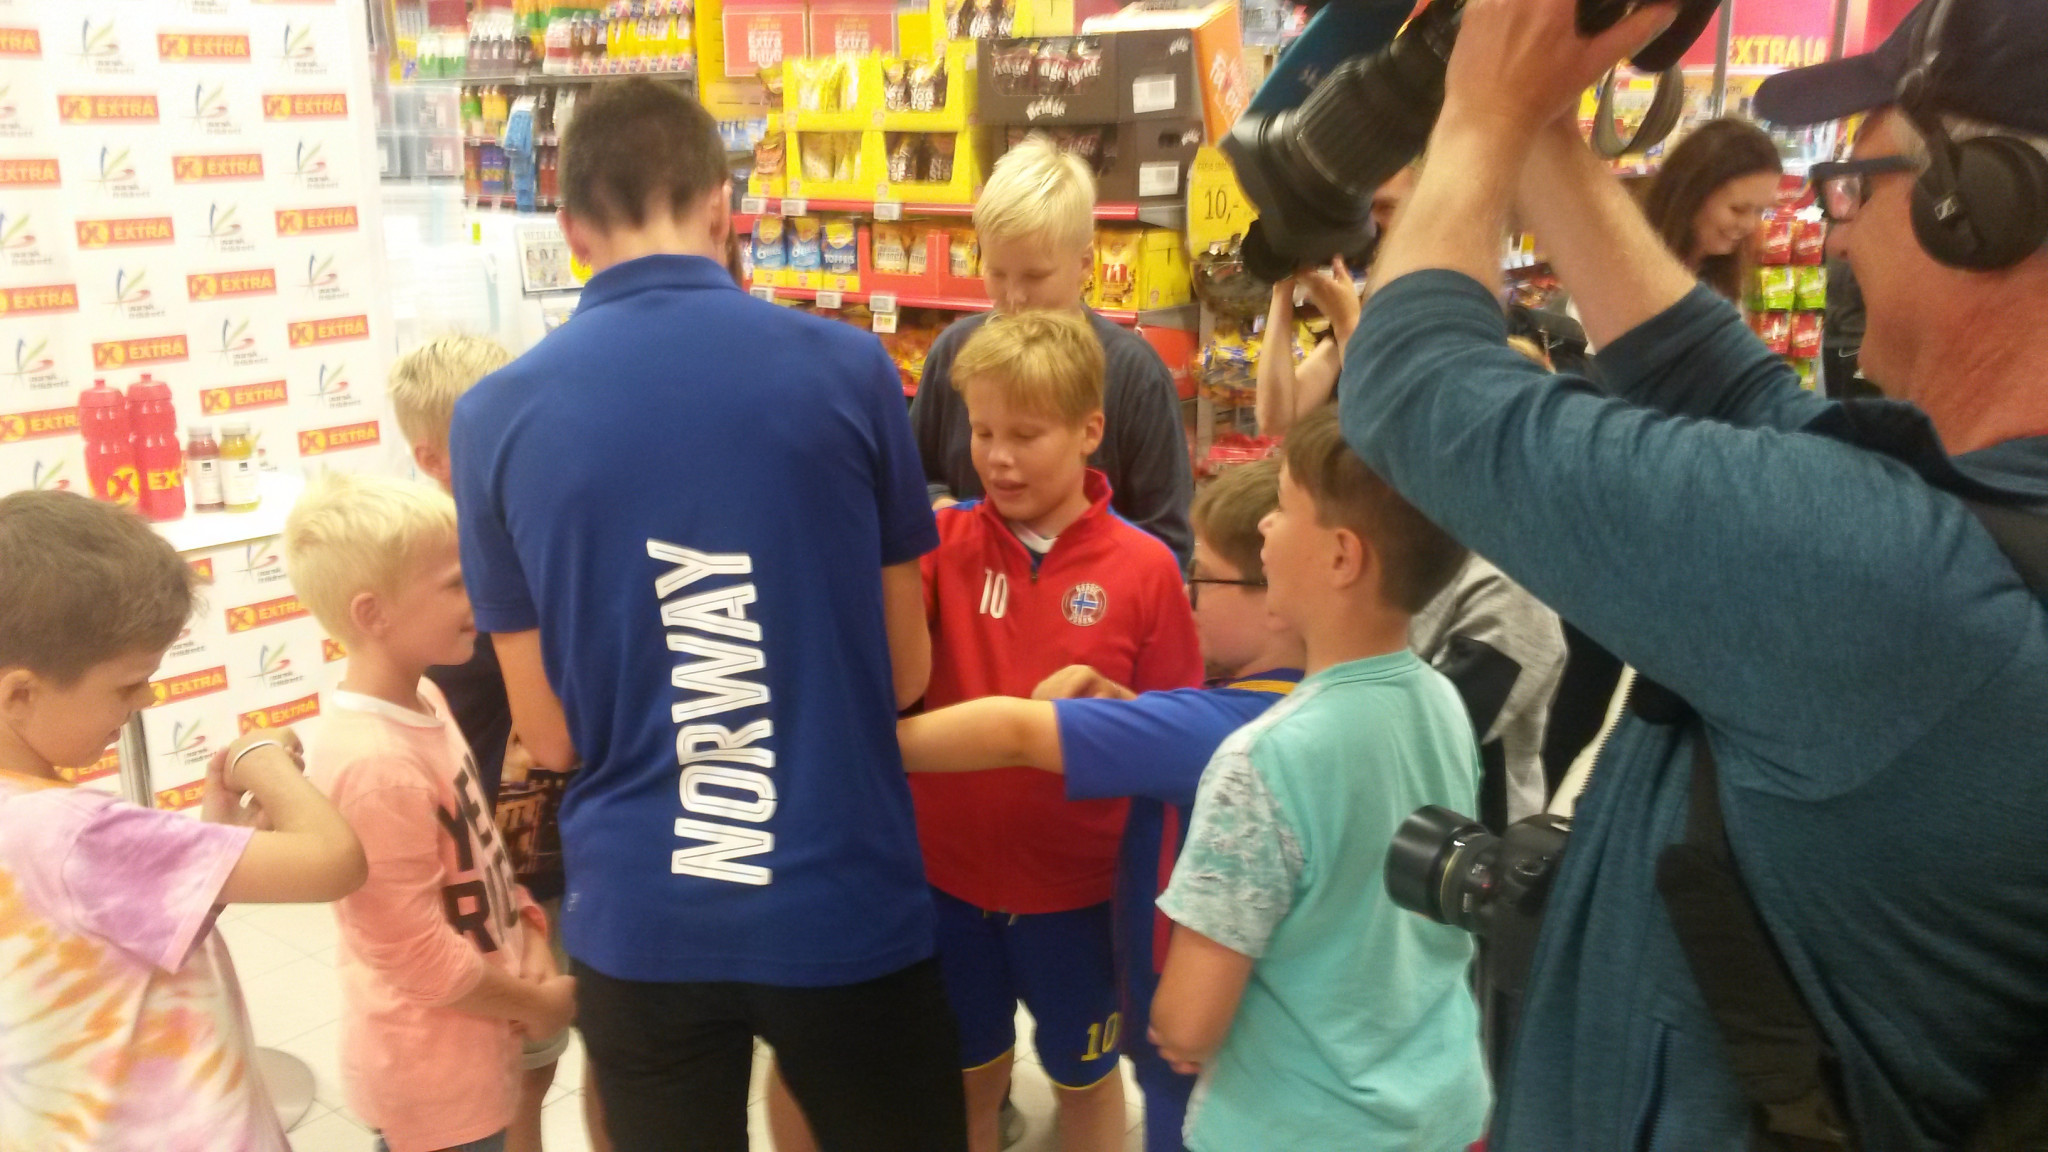 Jakob Ingebrigtsen gets an impromptu autograph signing underway at his local store in Sandnes ©ITG